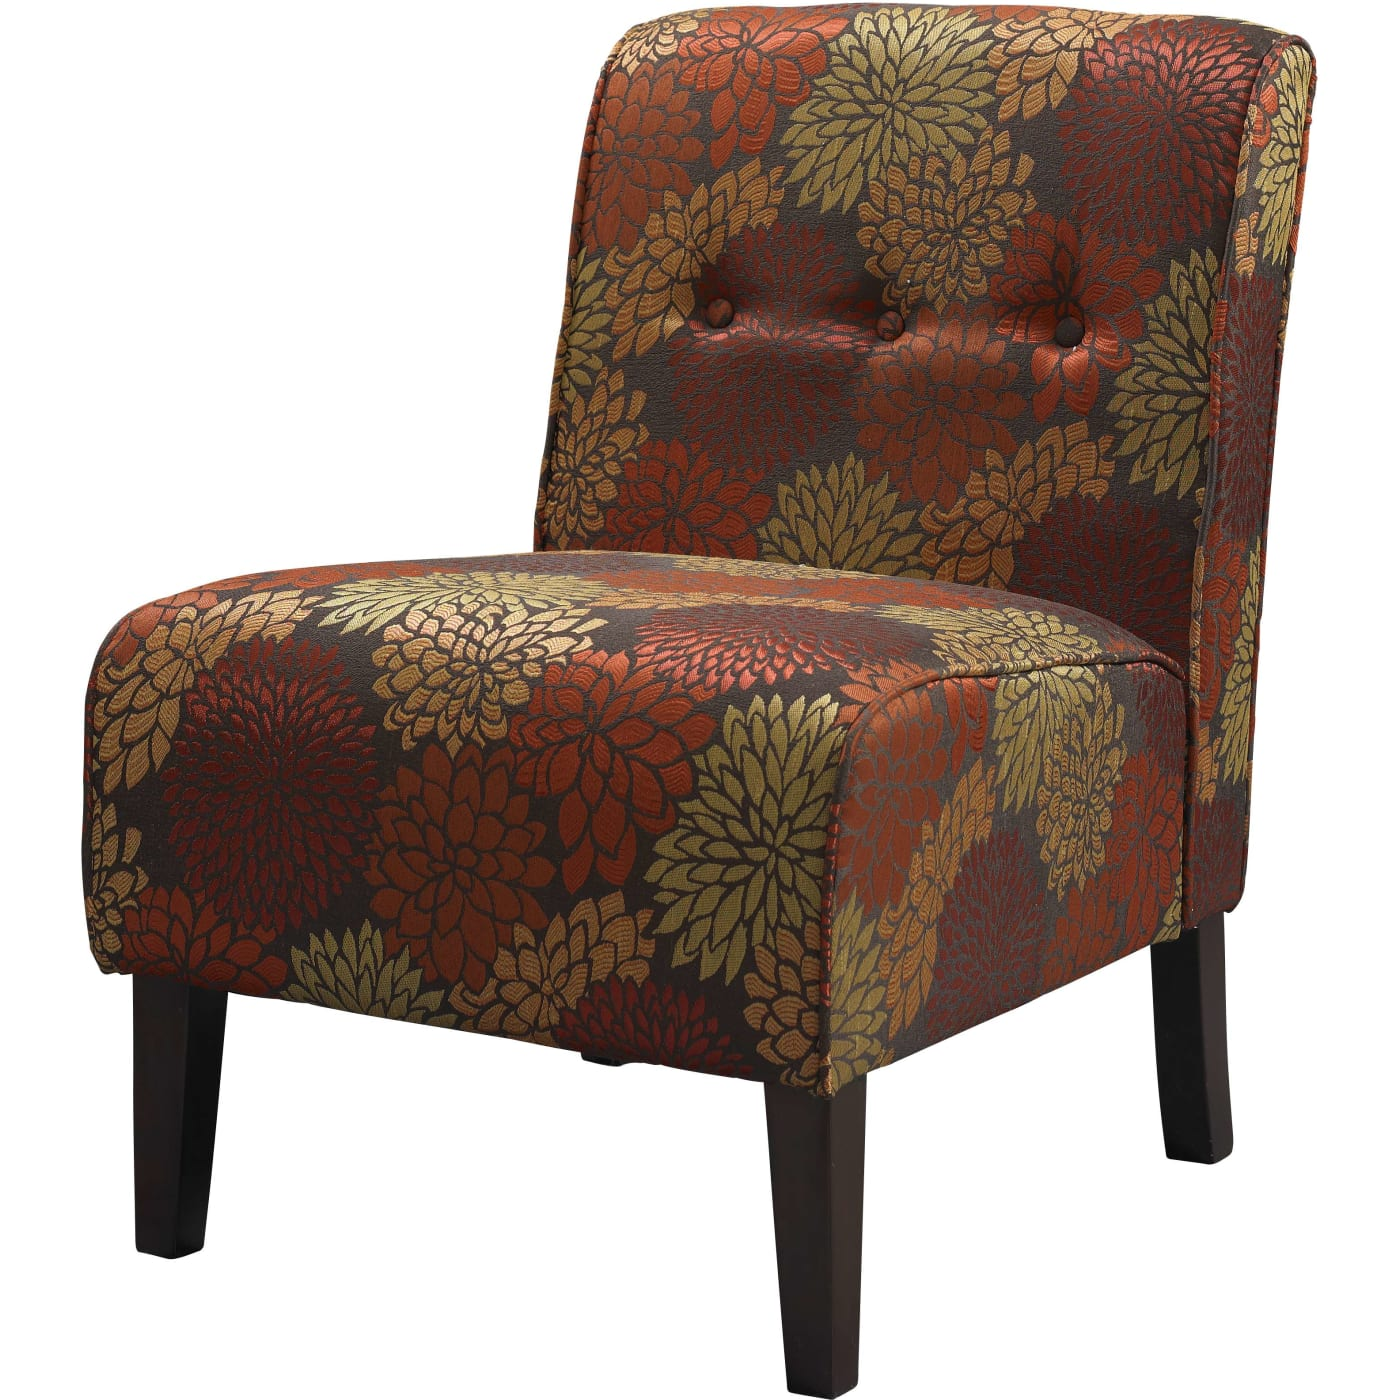 Linon Home Decor Products Inc Coco Harvest Accent Chair